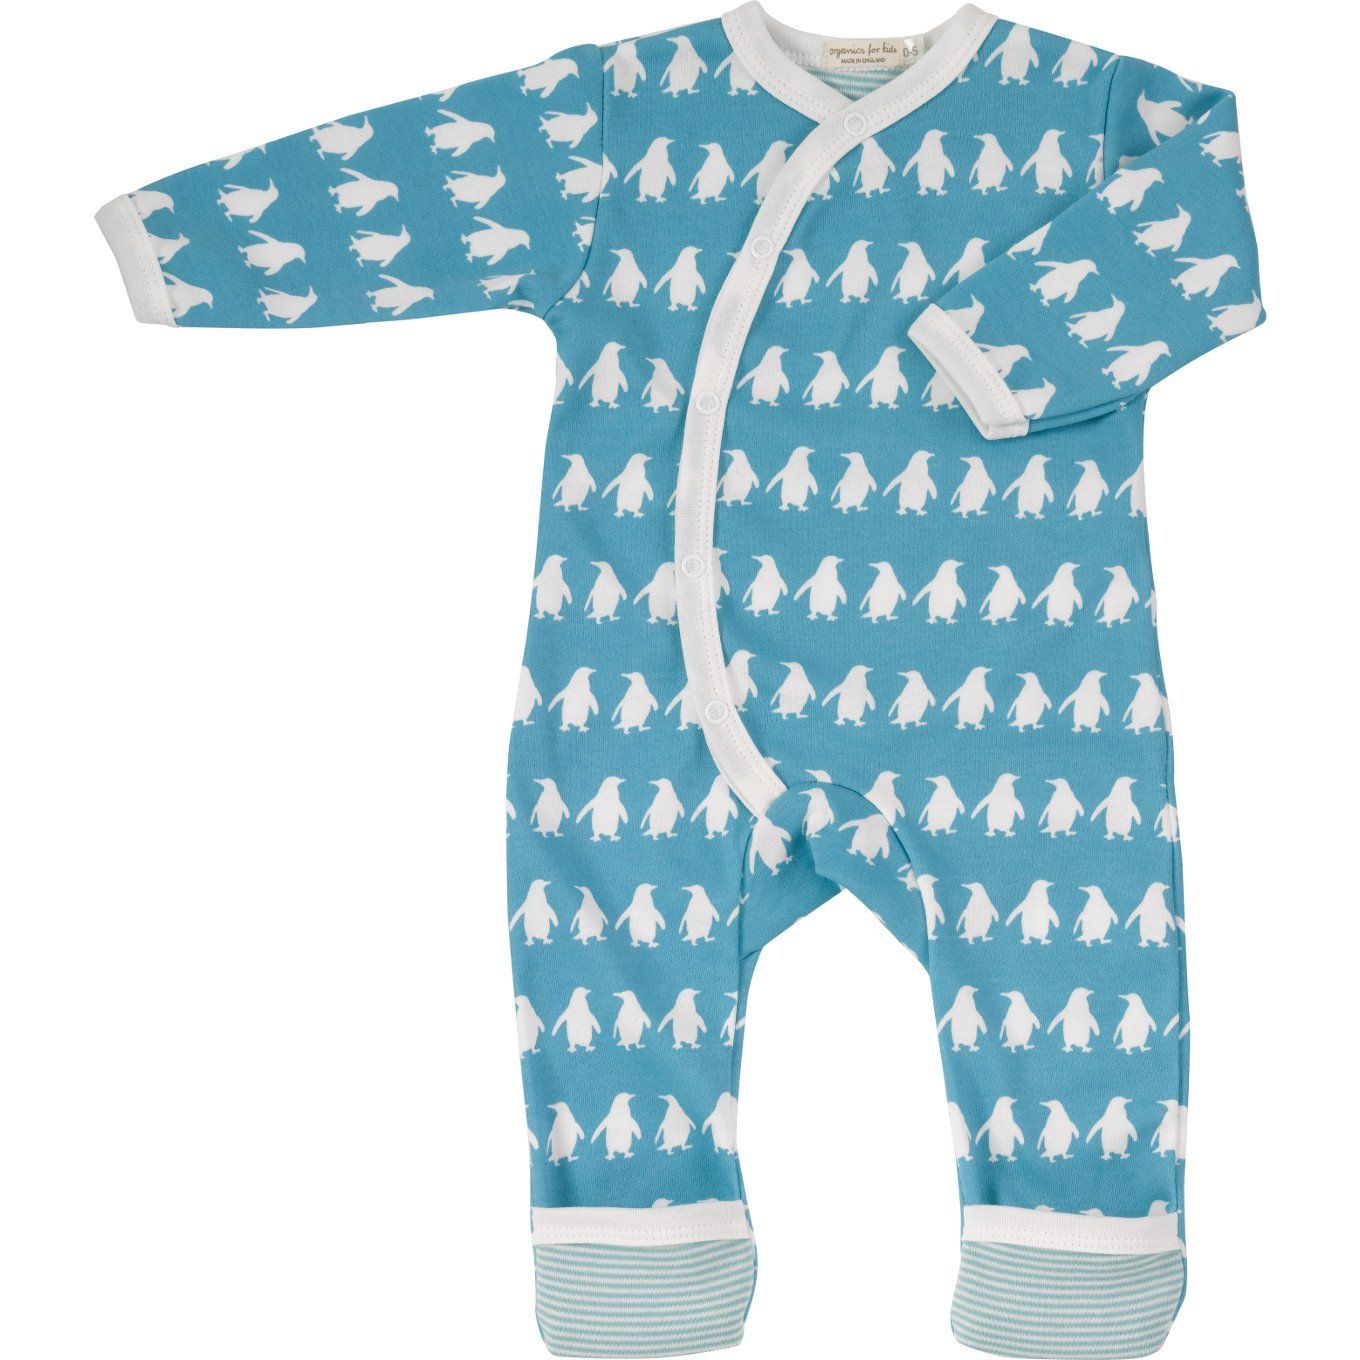 Pigeon Organics Organic Baby Clothes Organic Gifts Penguin